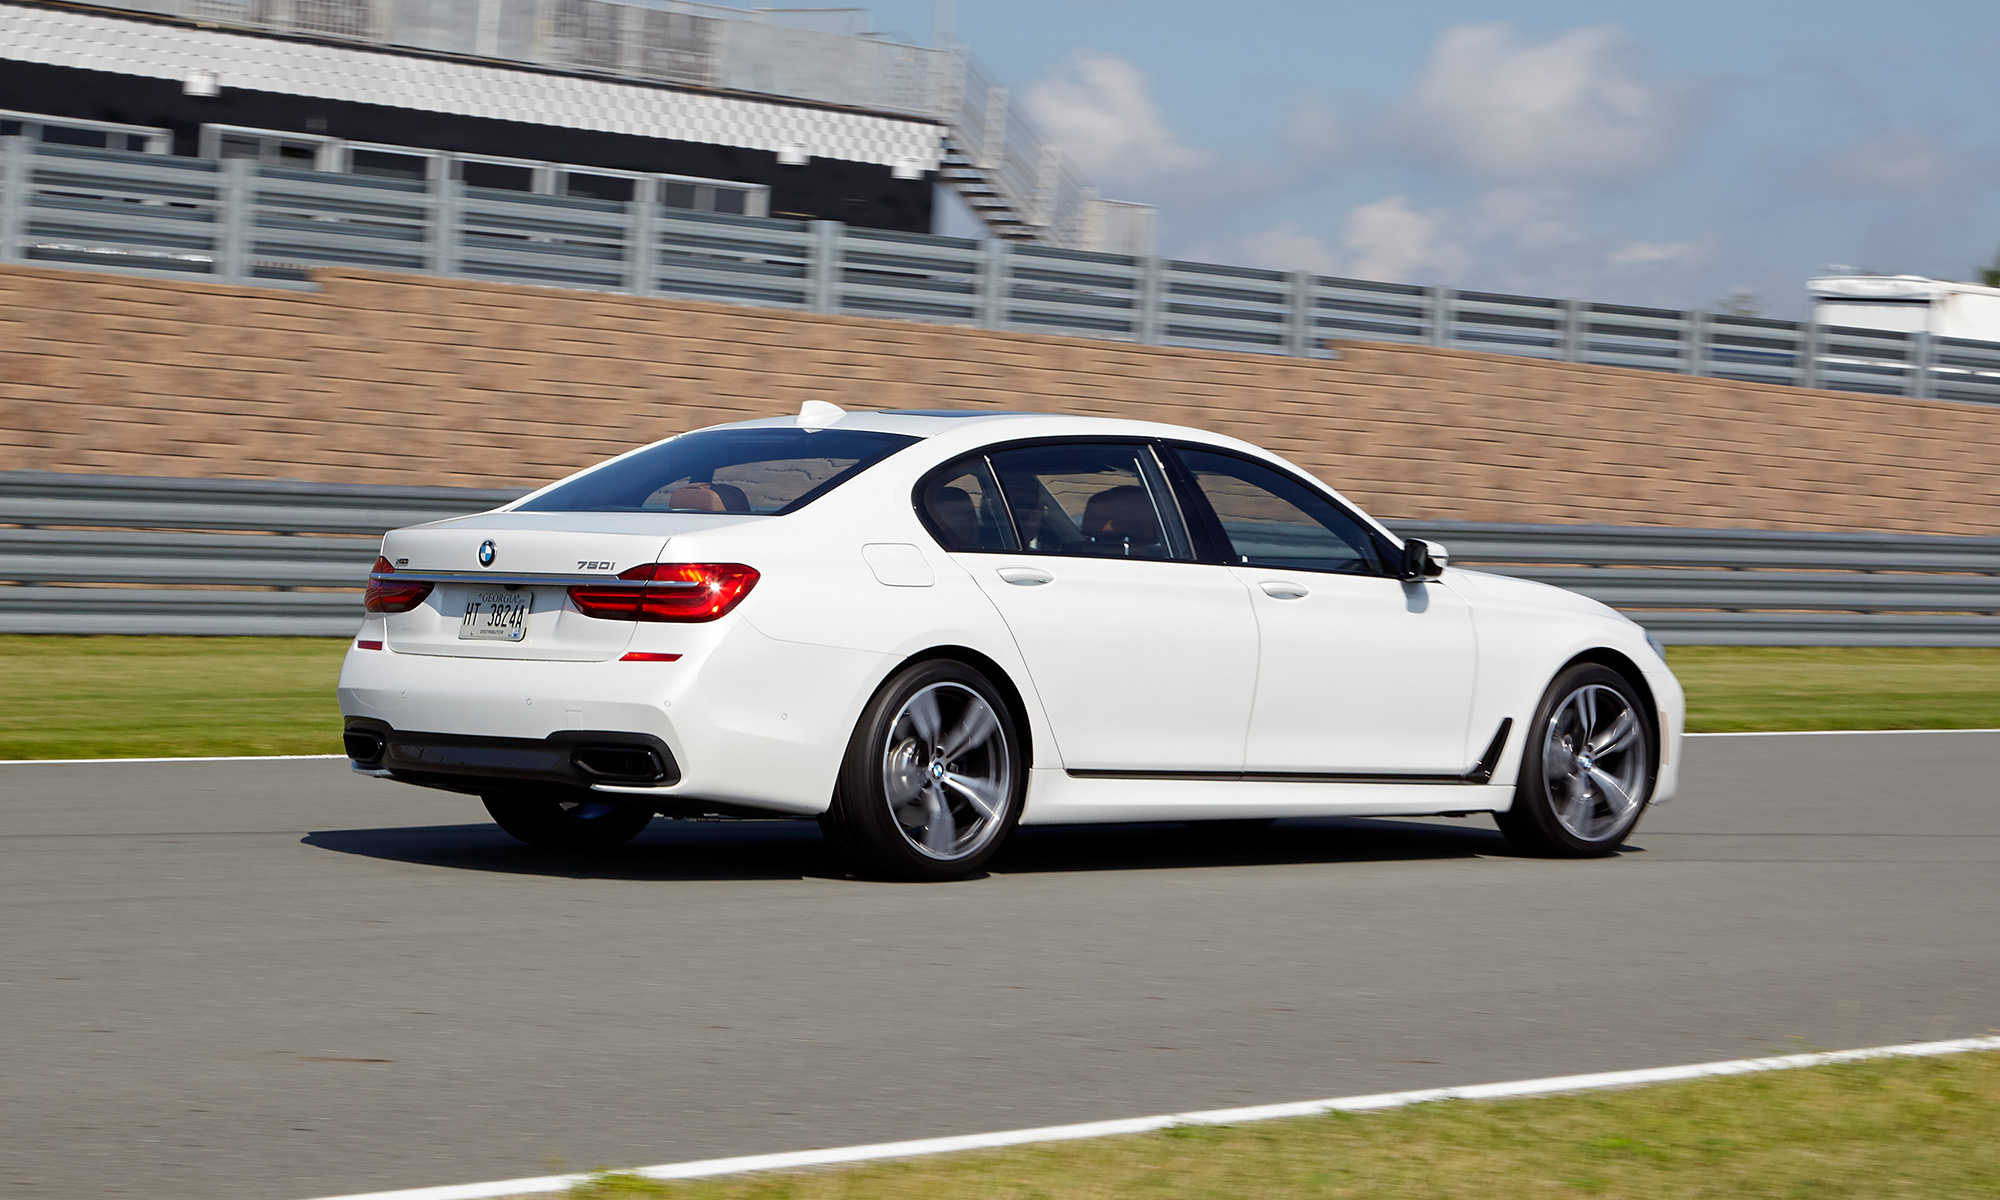 BMW 7 Series Tested: Here's The Tech You Get for $100K | Tom's Guide